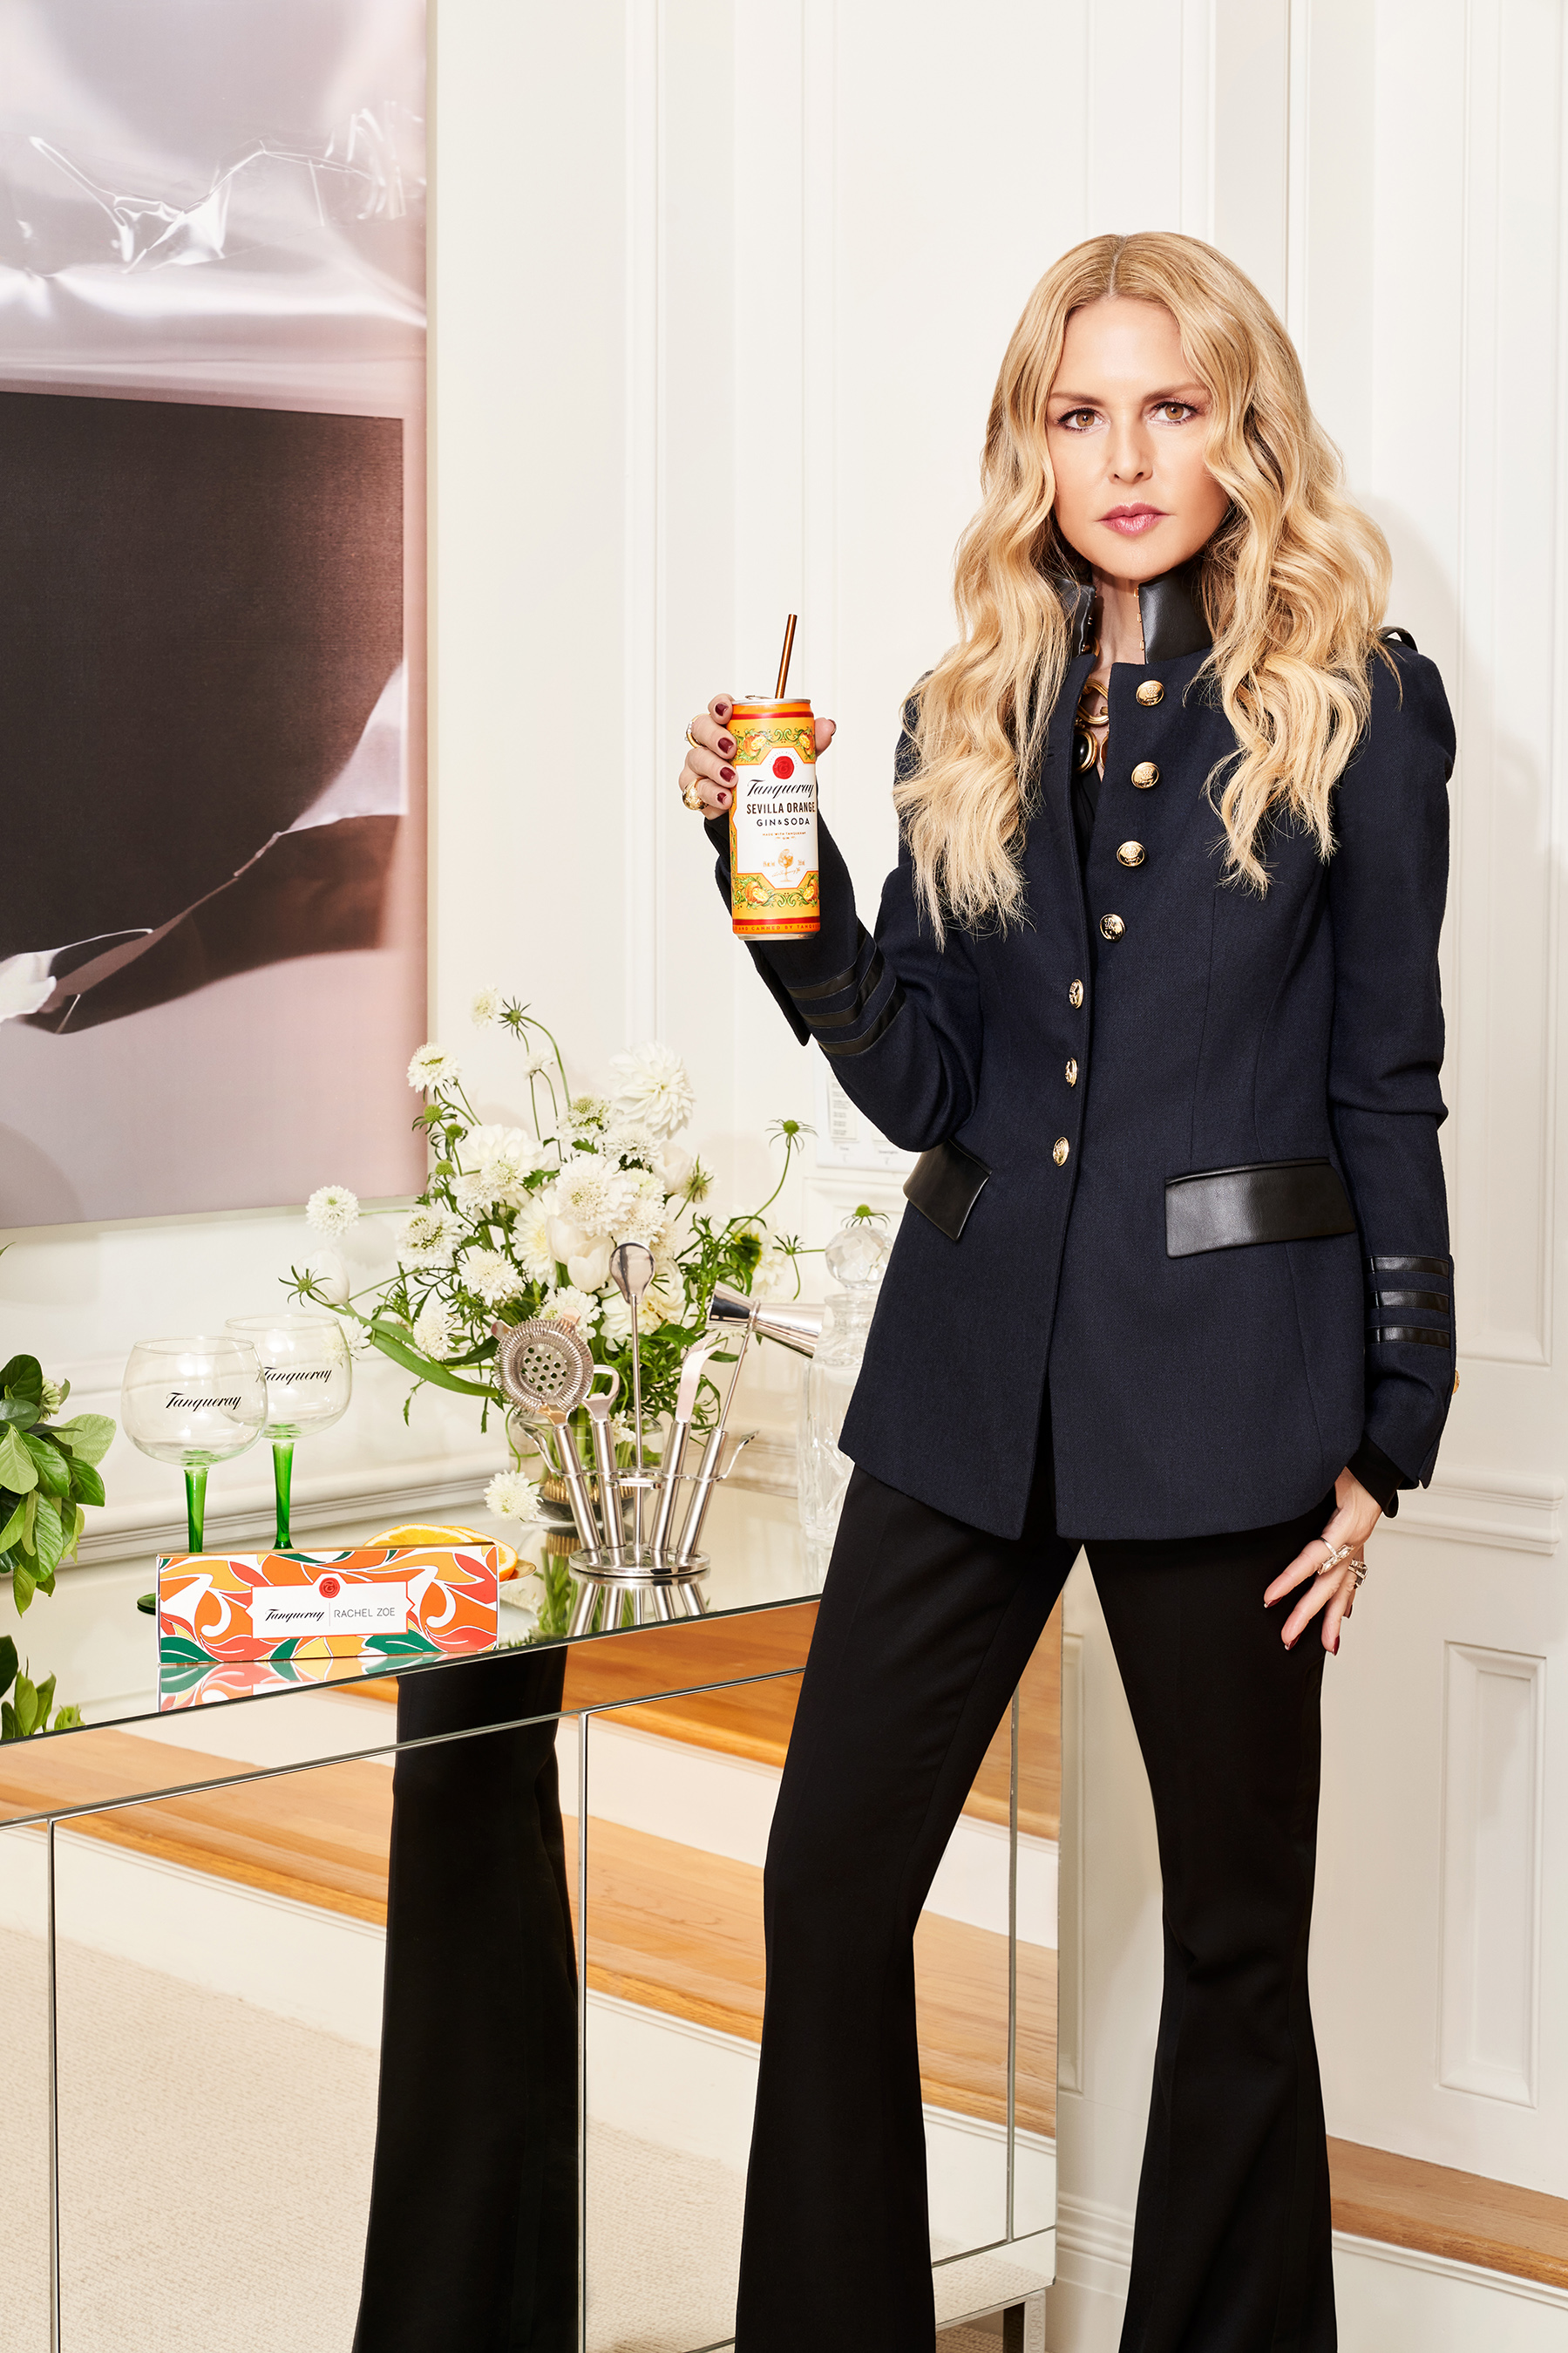 Tanqueray teamed up with Rachel Zoe to create a chic and reusable straw capsule collection as the perfect pairing for its newest offering, Tanqueray Crafted Gin Cocktails in a Can.